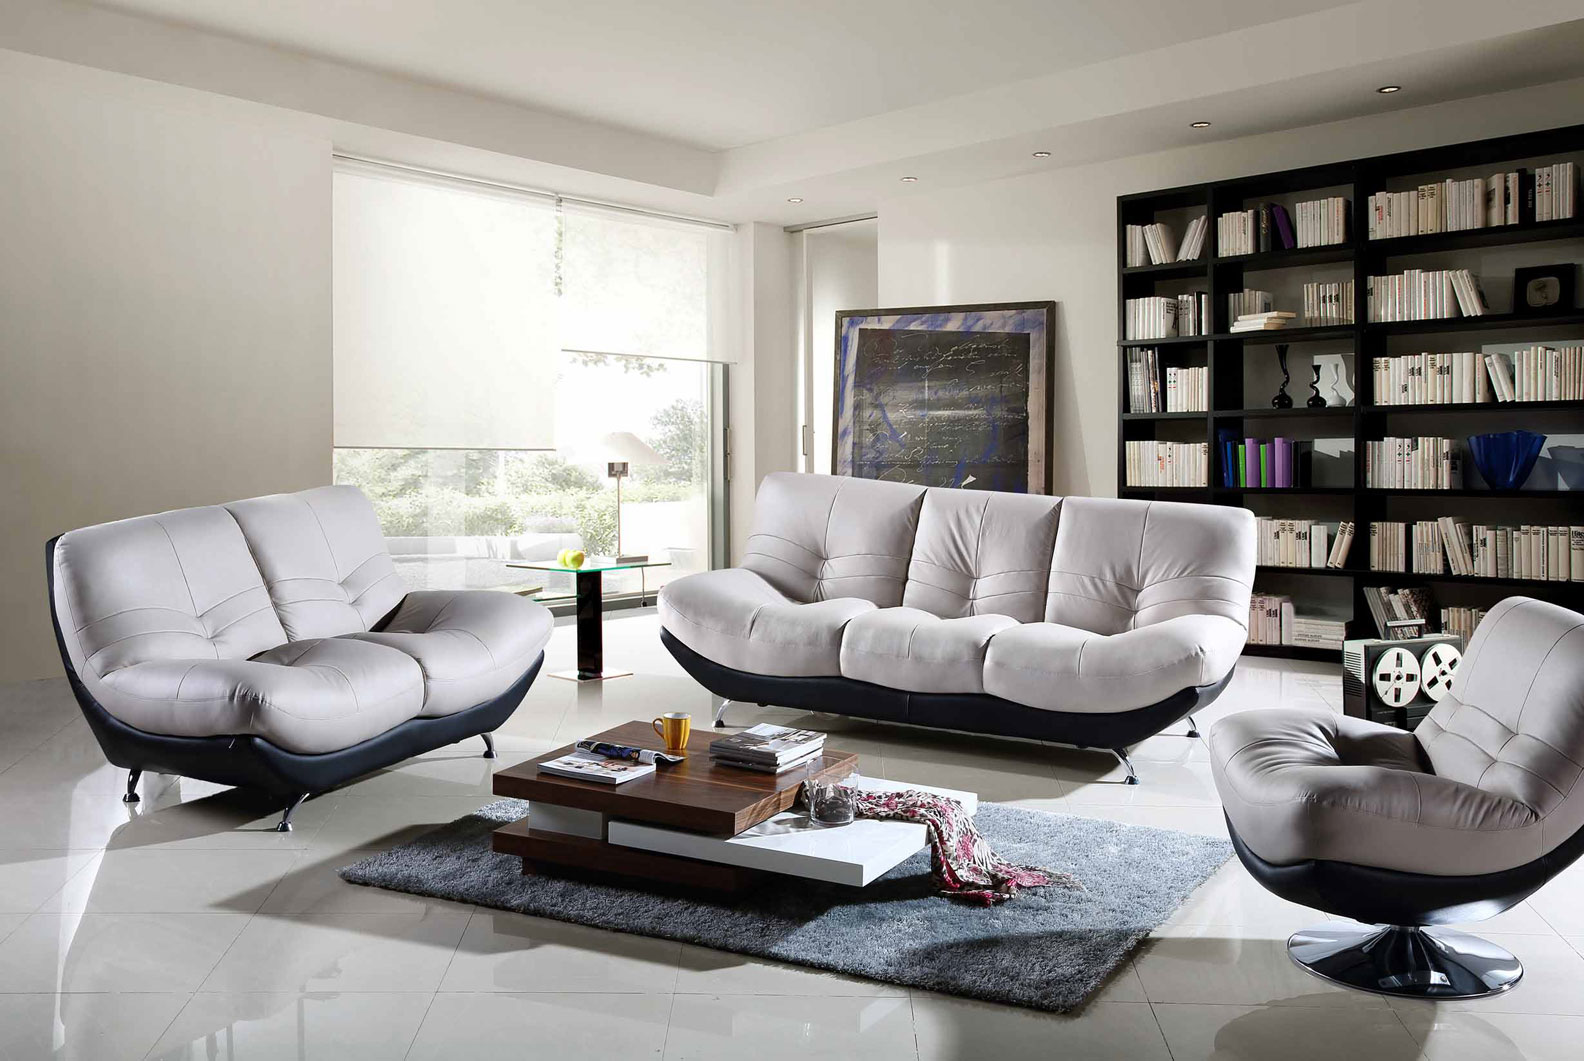 Finding Stylish Furniture As Living Room Chairs